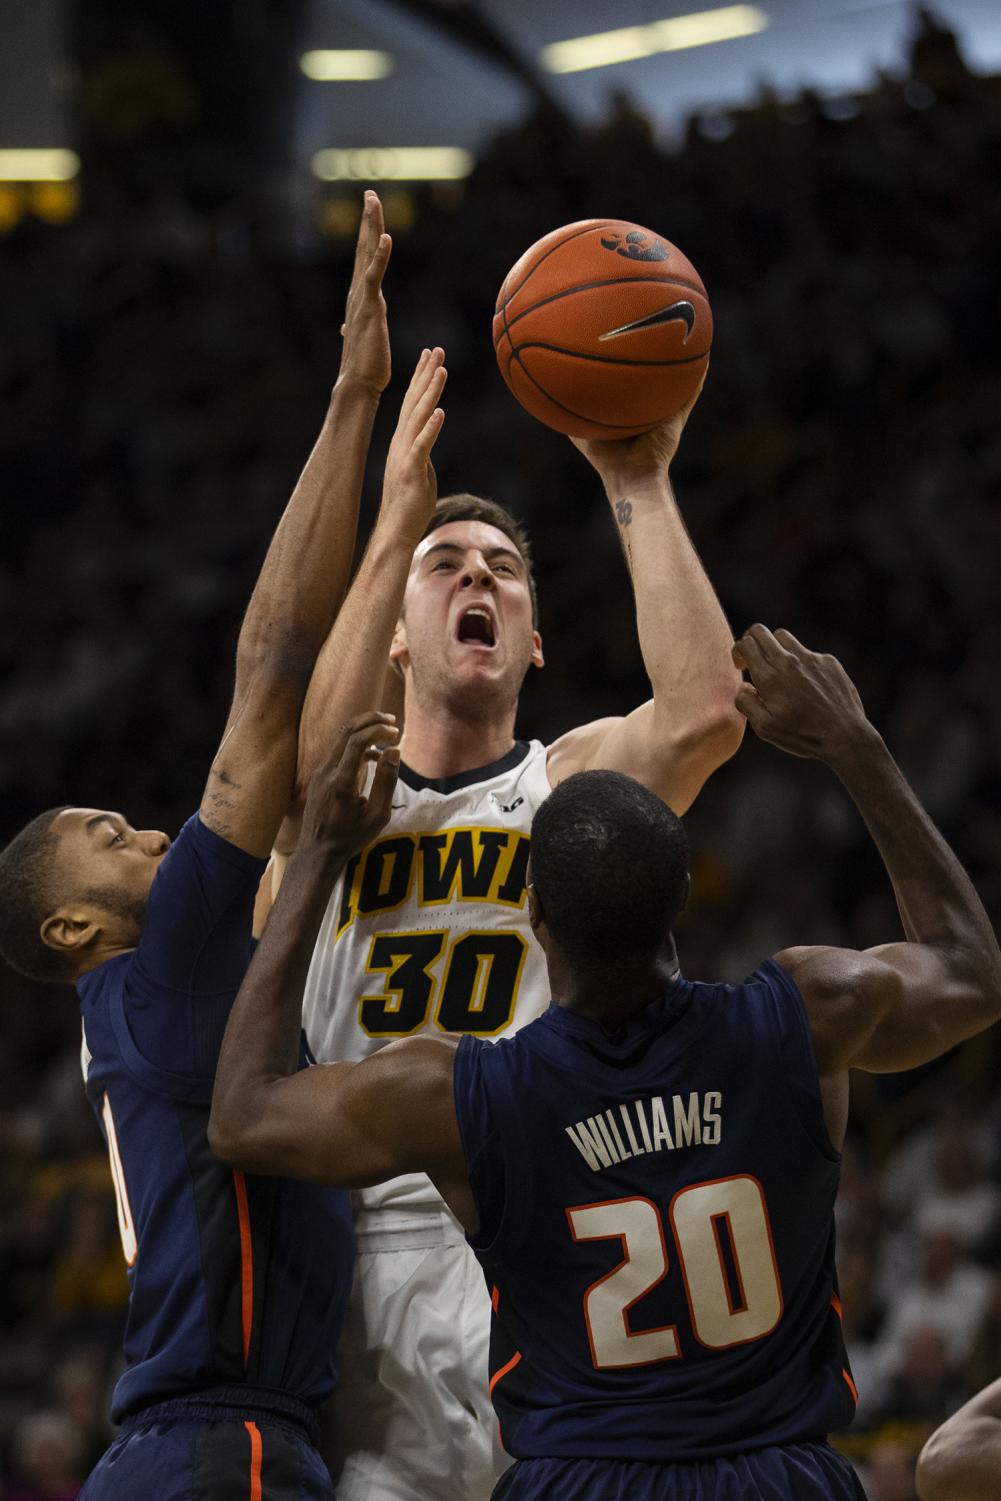 Iowa+guard+Connor+McCaffery+attempts+a+shot+during+the+Iowa%2FIllinois+men%27s+basketball+game+at+Carver-Hawkeye+Arena+on+Sunday%2C+January+20%2C+2019.+The+Hawkeyes+defeated+the+Fighting+Illini%2C+95-71.+